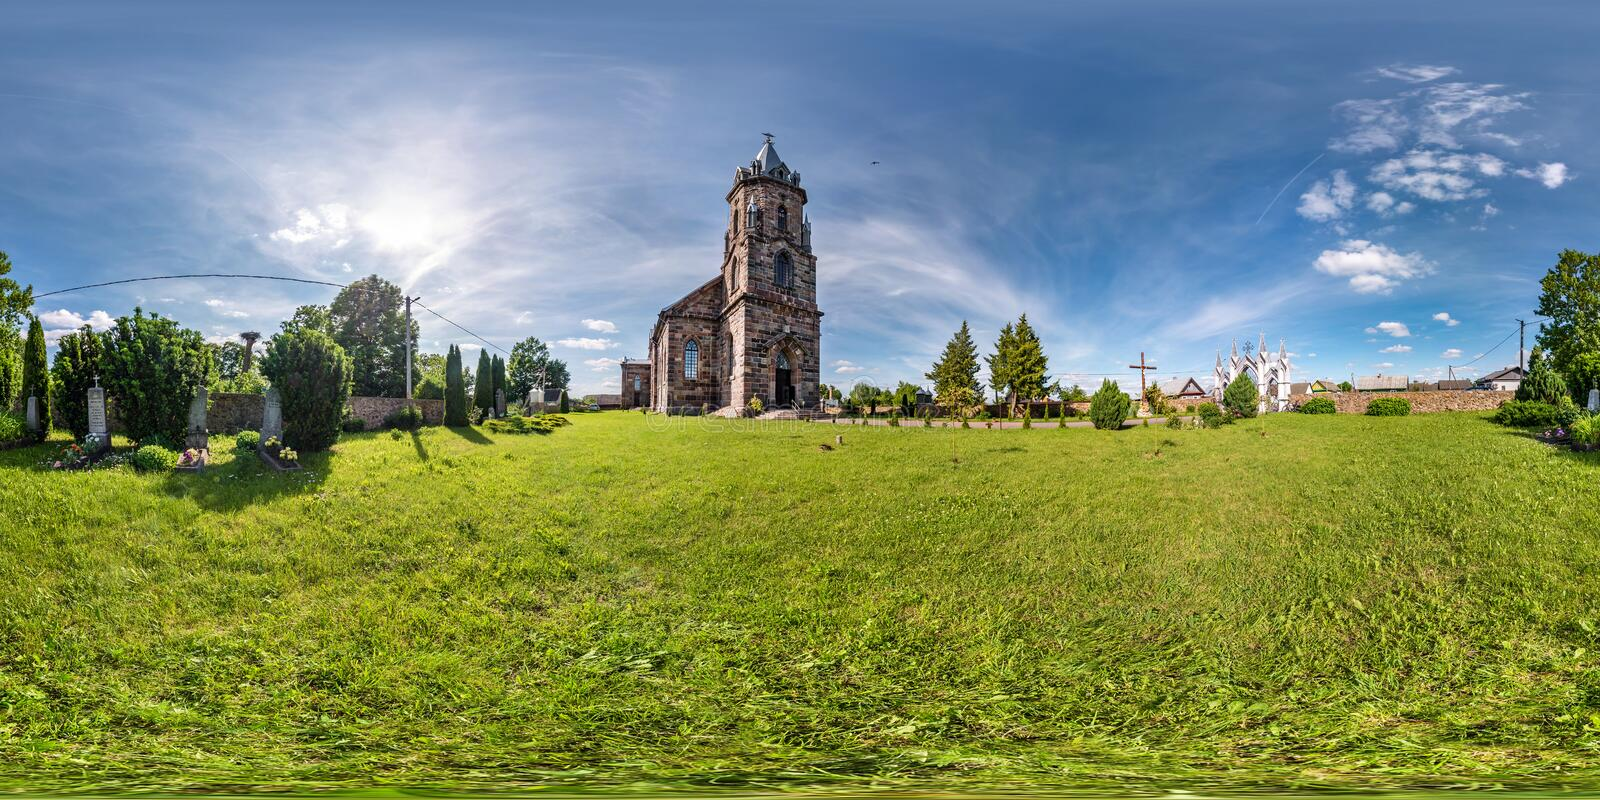 Full seamless hdri panorama 360 degrees angle view facade of church in beautiful decorative medieval neo gothic style architecture stock photography